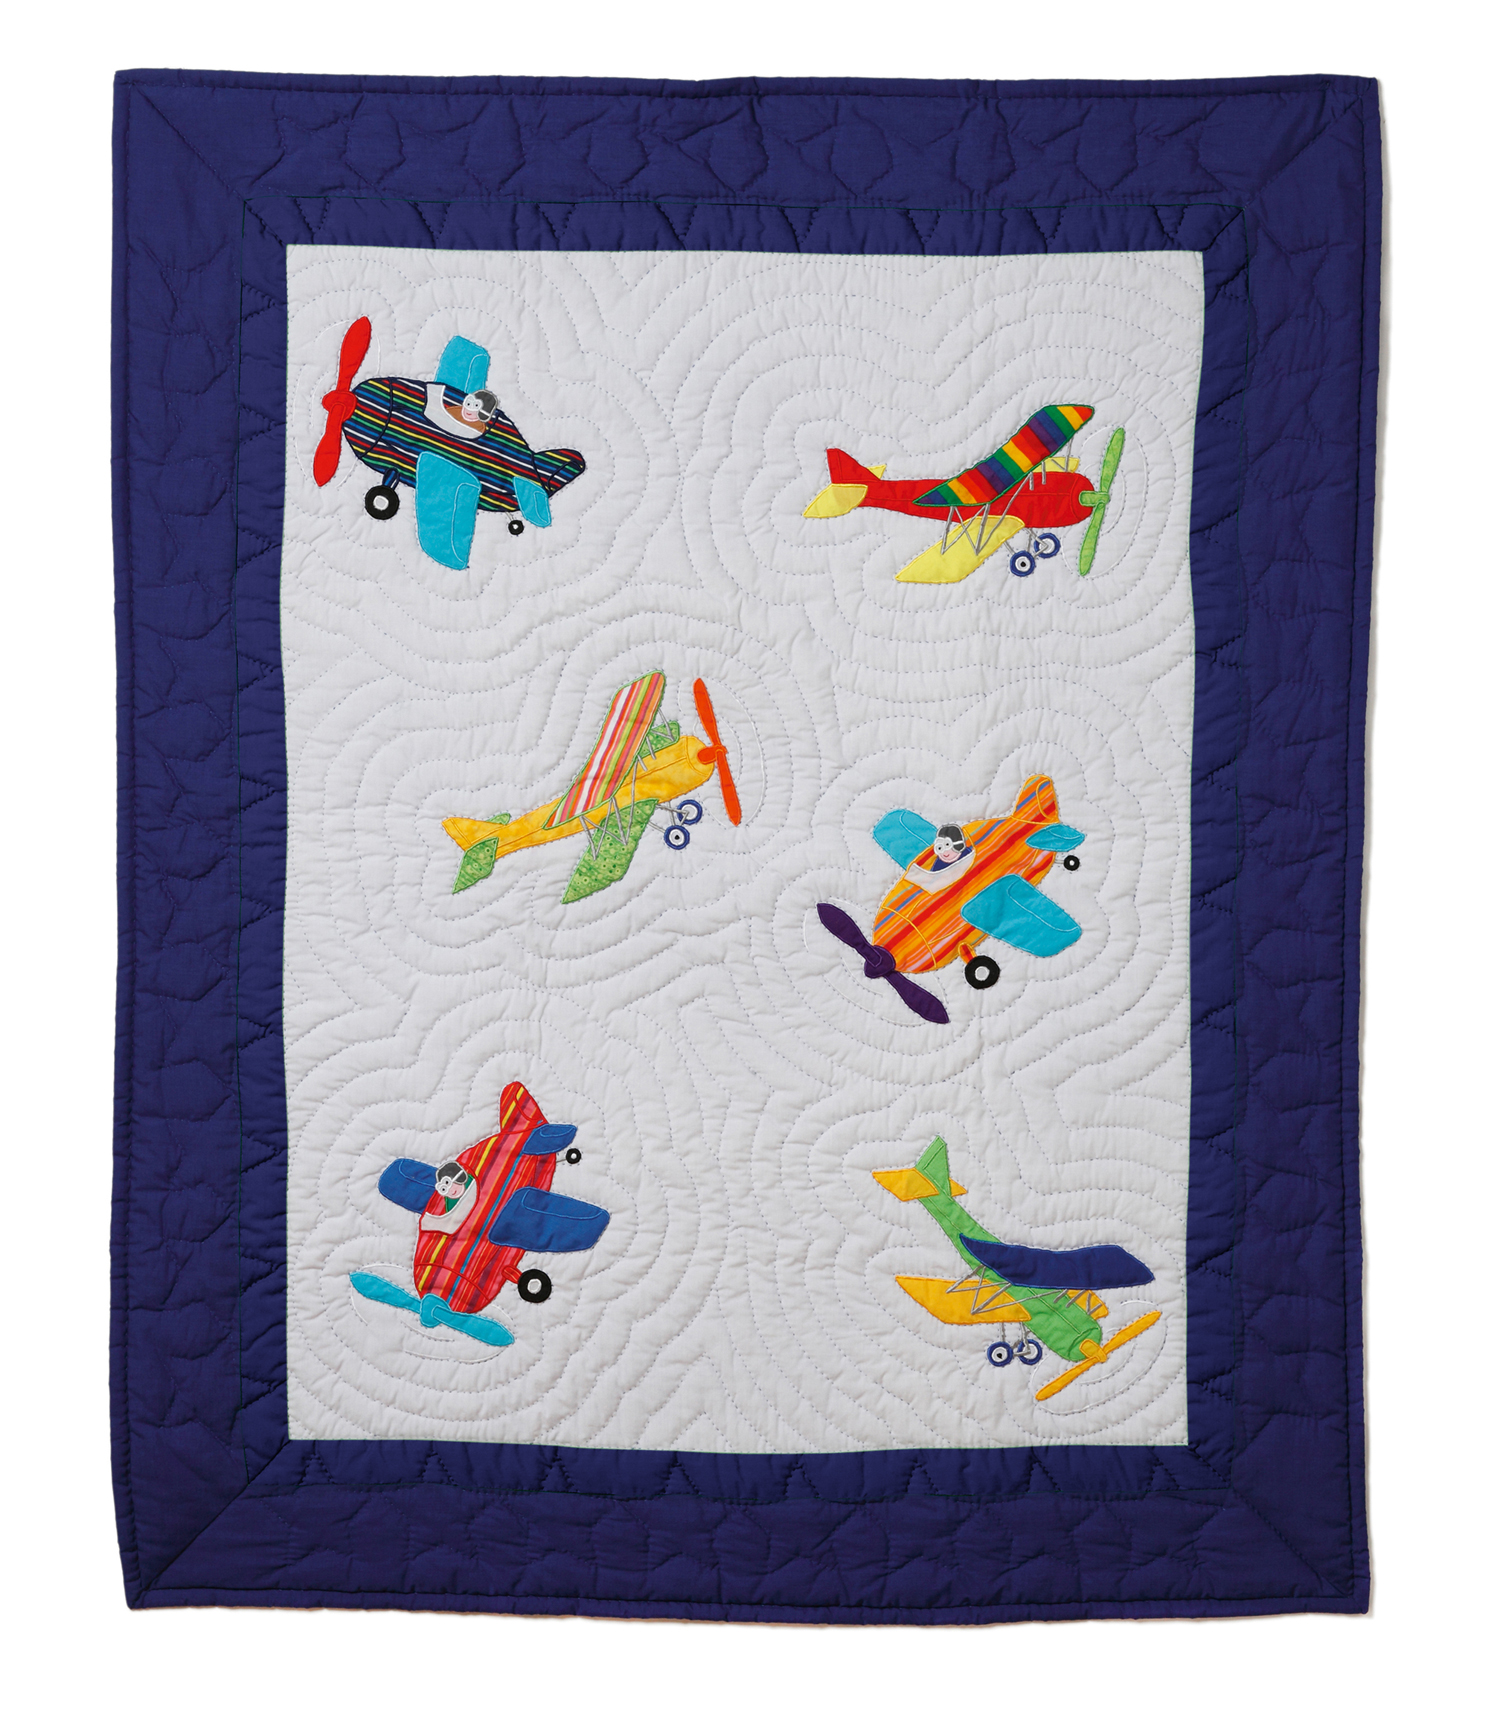 309 quilt Airplanes.jpg